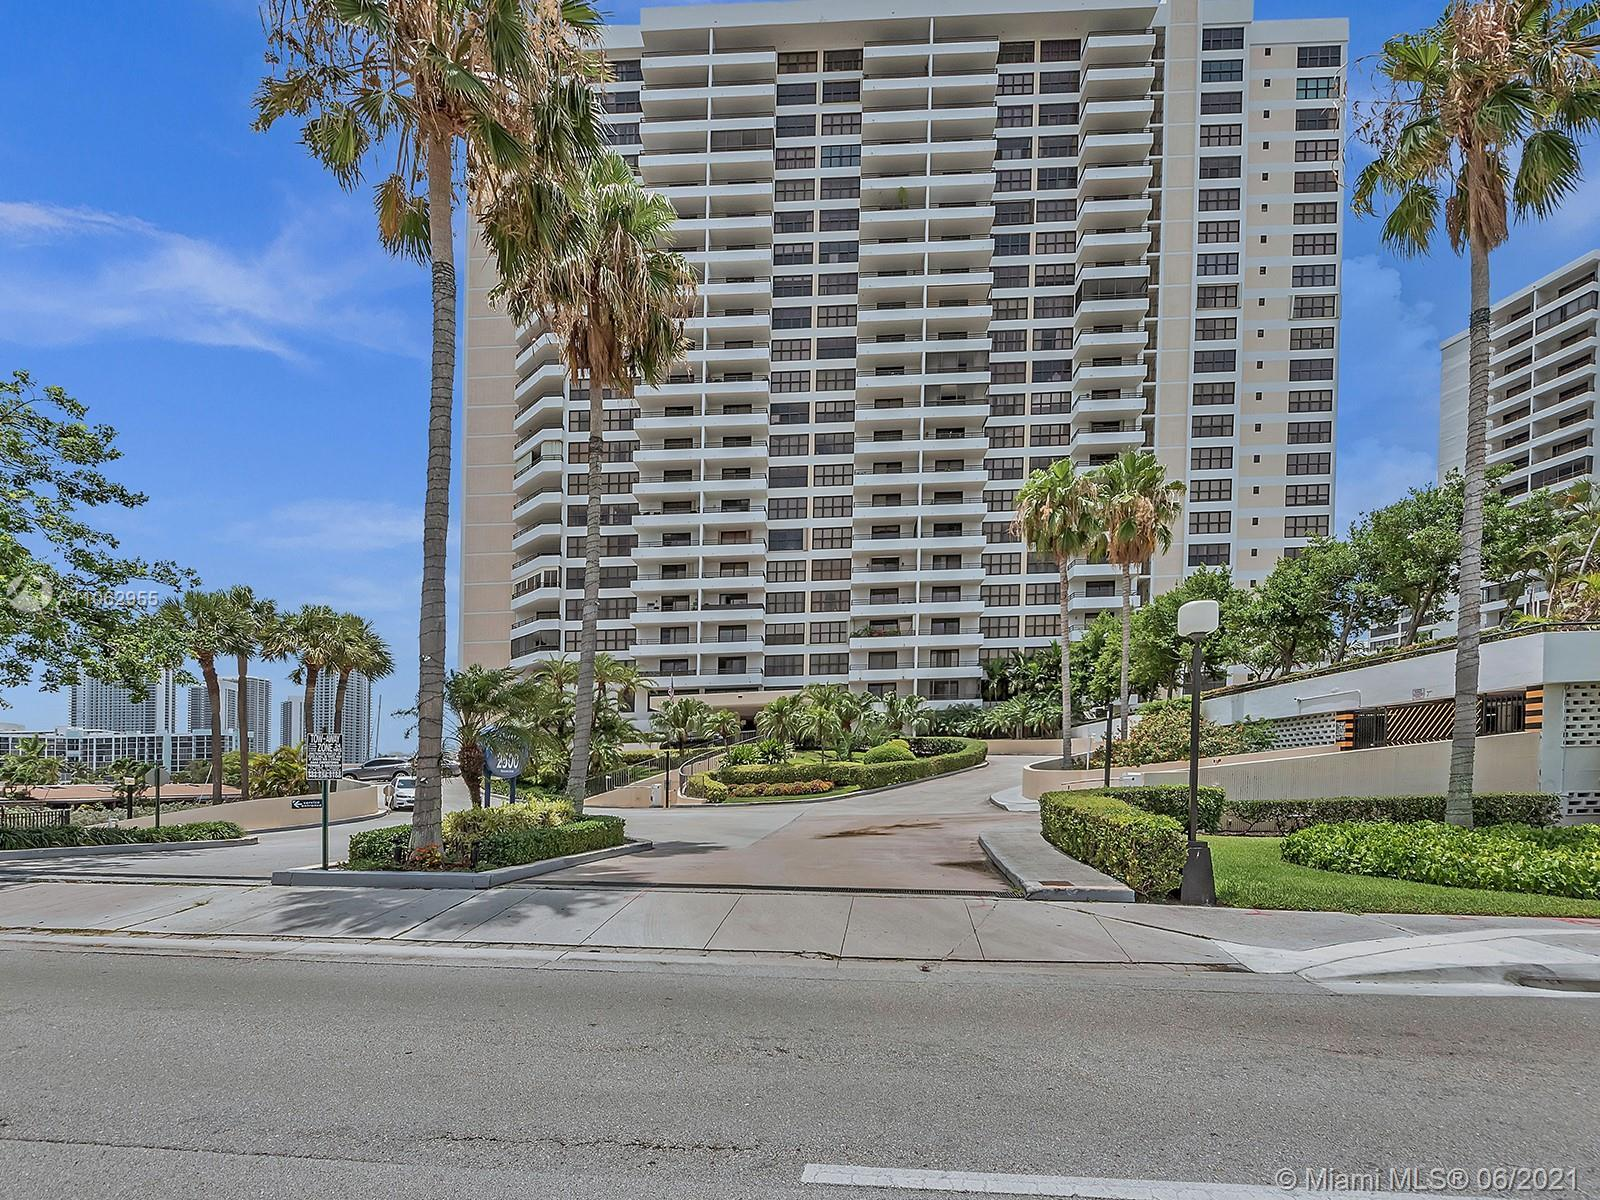 Spacious 2/2 condo on the 21st floor with breathtaking views over the intercoastal. Amazing space wi